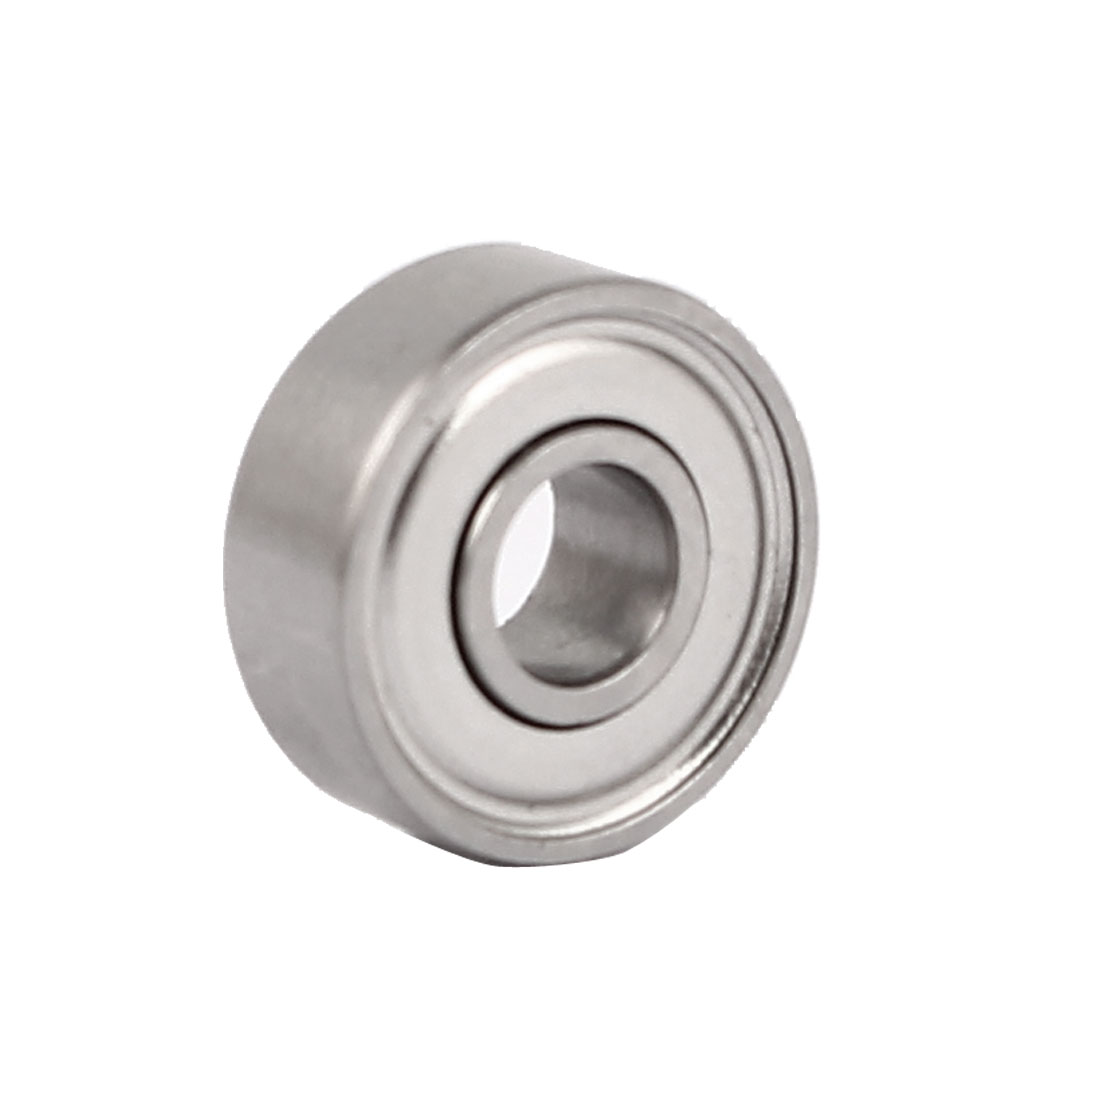 ZZ694 Shielded Deep Groove Flange Ball Bearing 11mm OD 4mm Bore Diameter